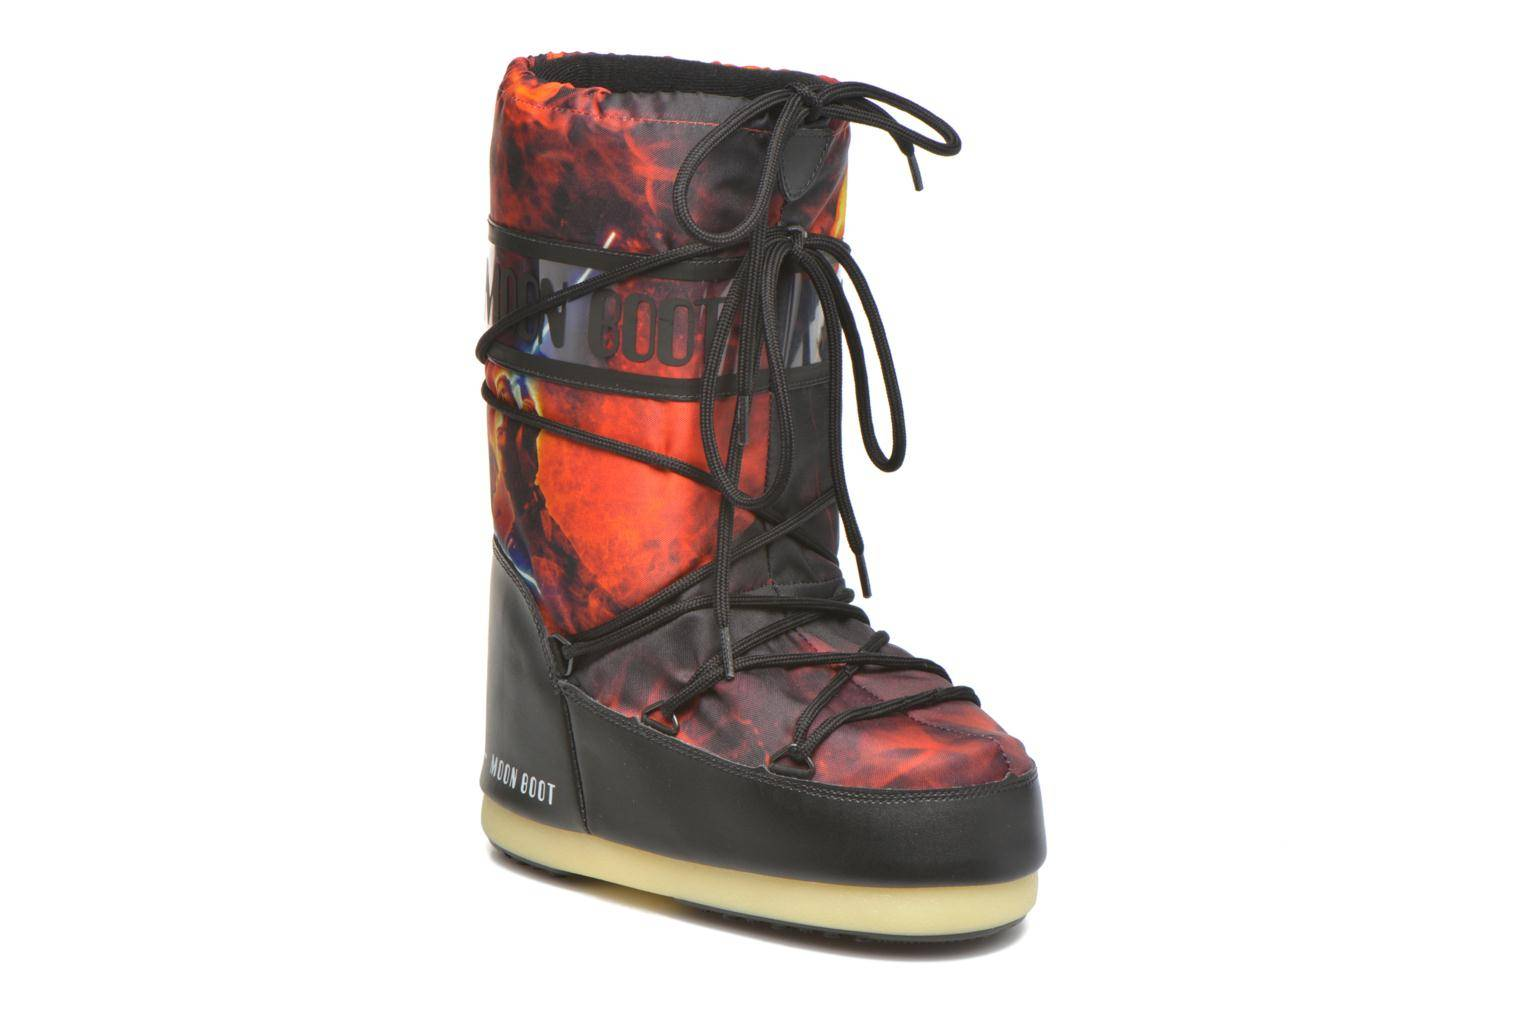 Moon Boot -  Star wars Jr Fire by  -Saappaat Lapsille  / Punainen